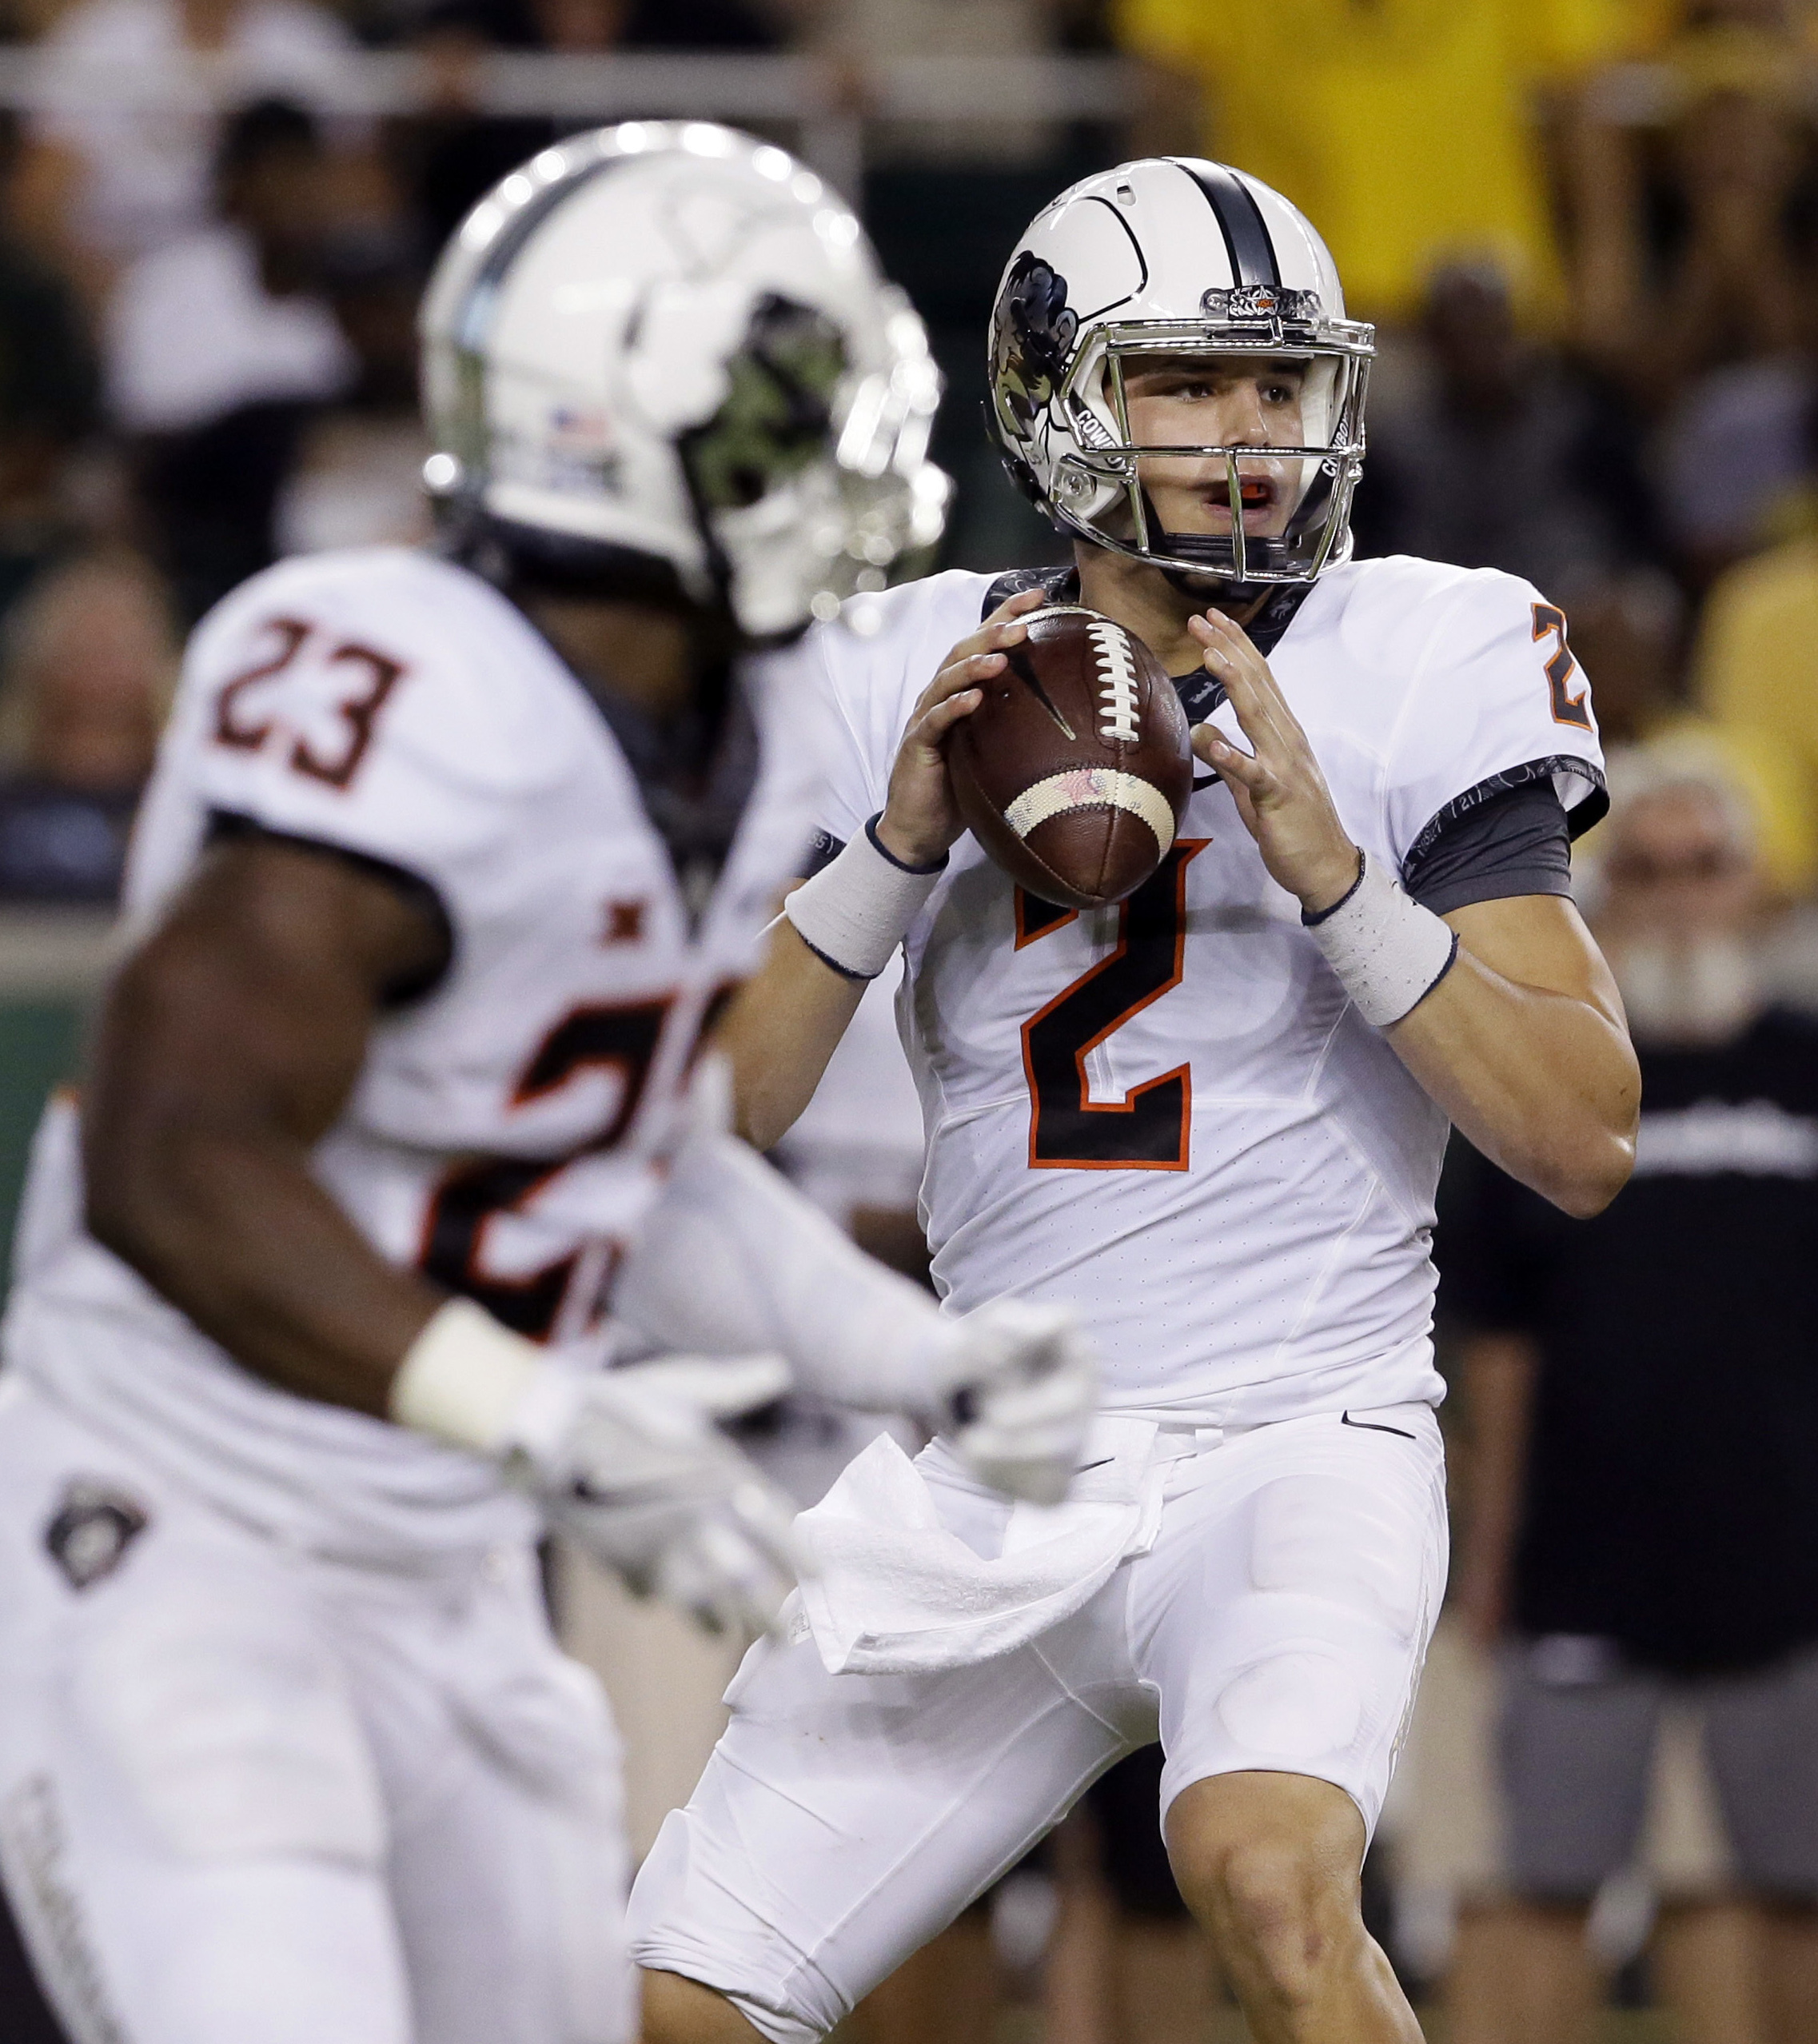 FILE - I this Sept. 24, 2016, file photo, Oklahoma State quarterback Mason Rudolph (2) looks to pass as running back Rennie Childs (23) looks back during an NCAA college football game against Baylor in Waco, Texas. Oklahoma State takes on Texas on Saturda